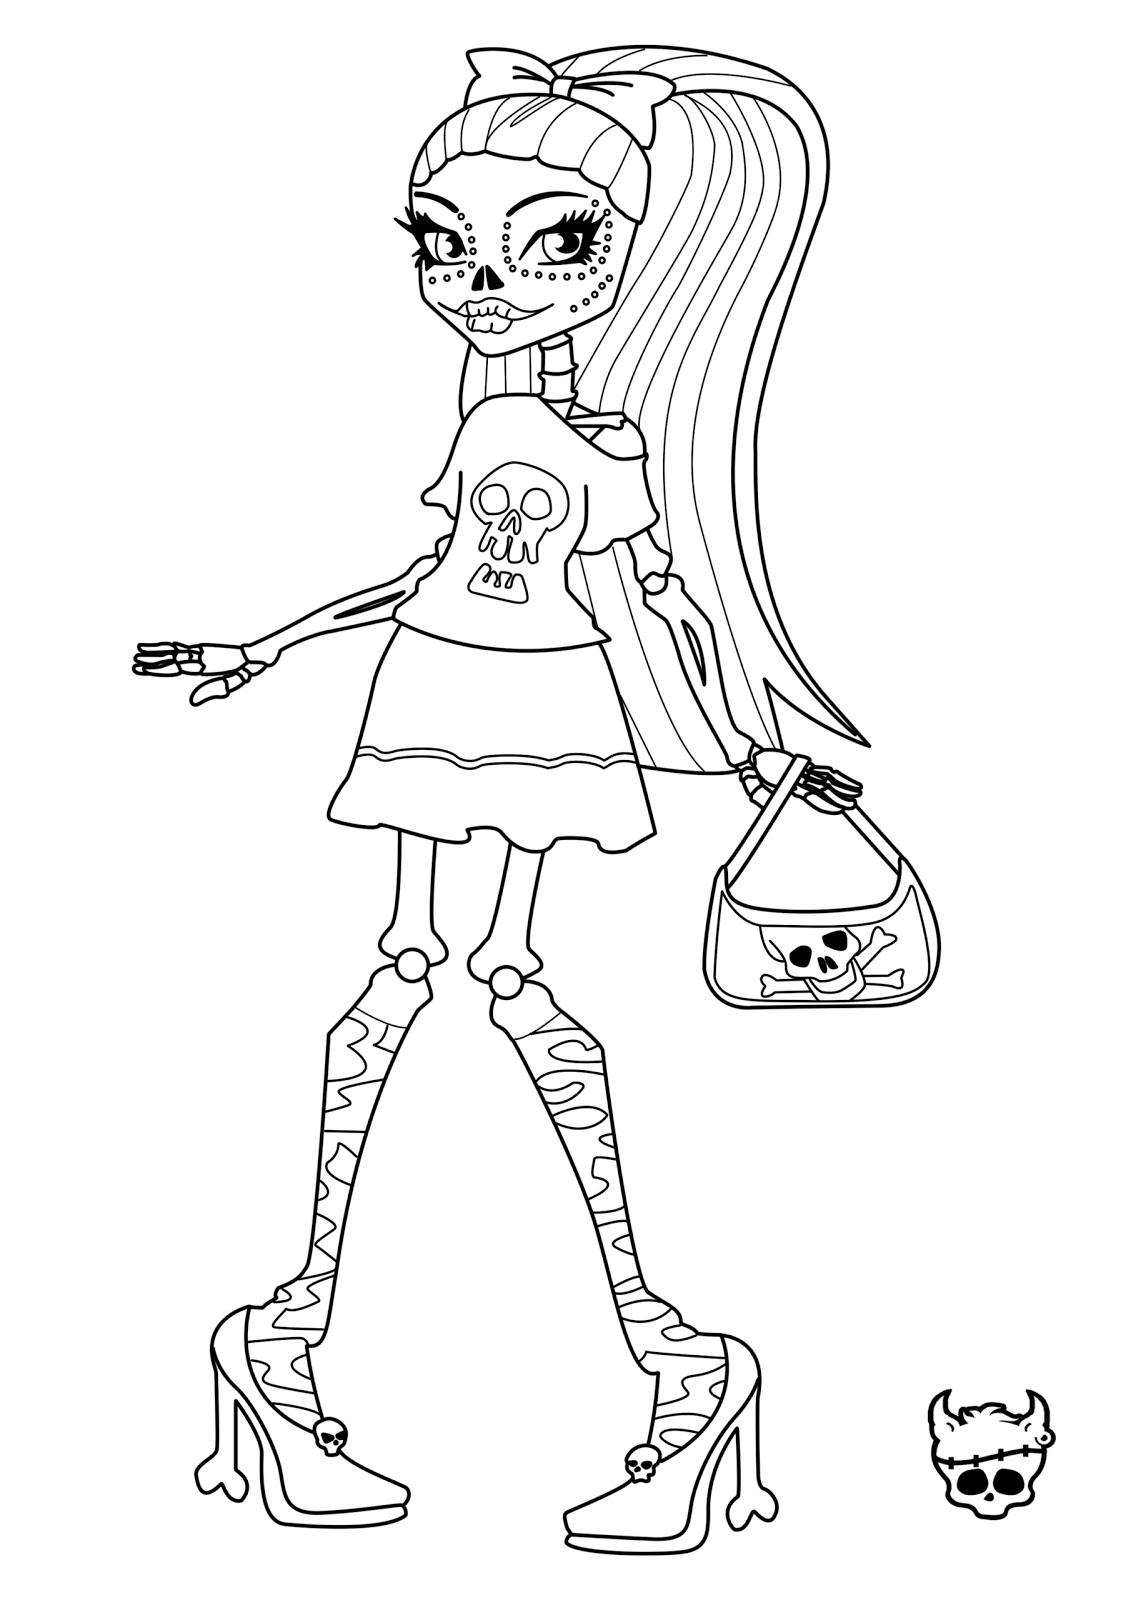 Astounding image within printable monster high coloring pages